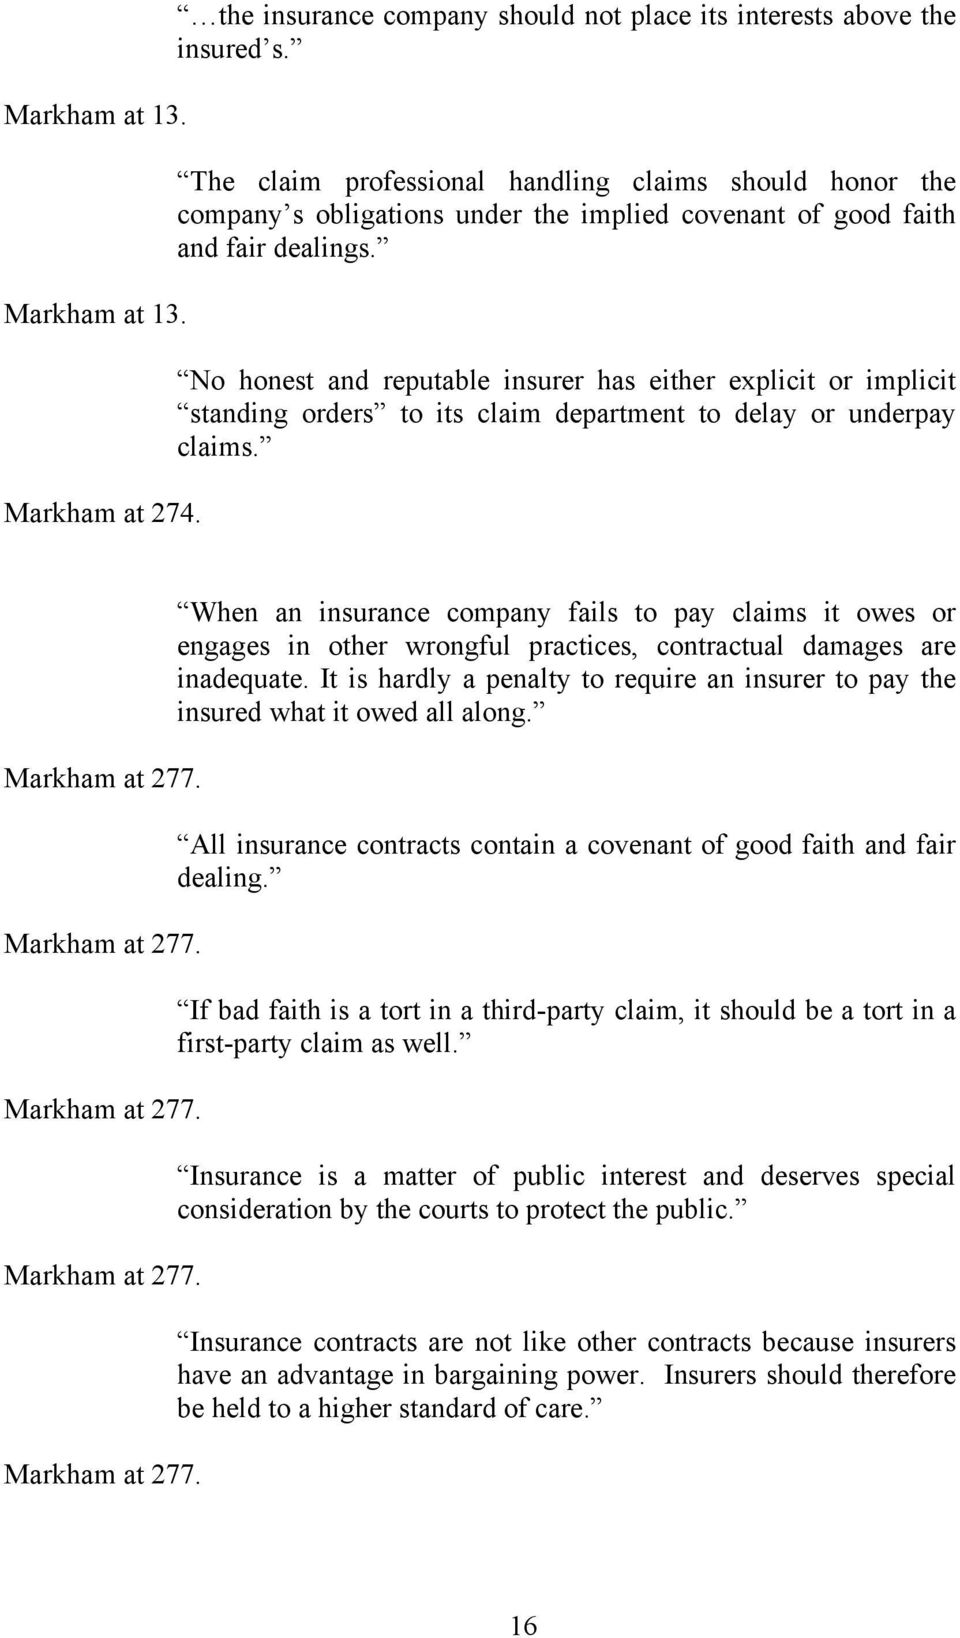 No honest and reputable insurer has either explicit or implicit standing orders to its claim department to delay or underpay claims. Markham at 277.